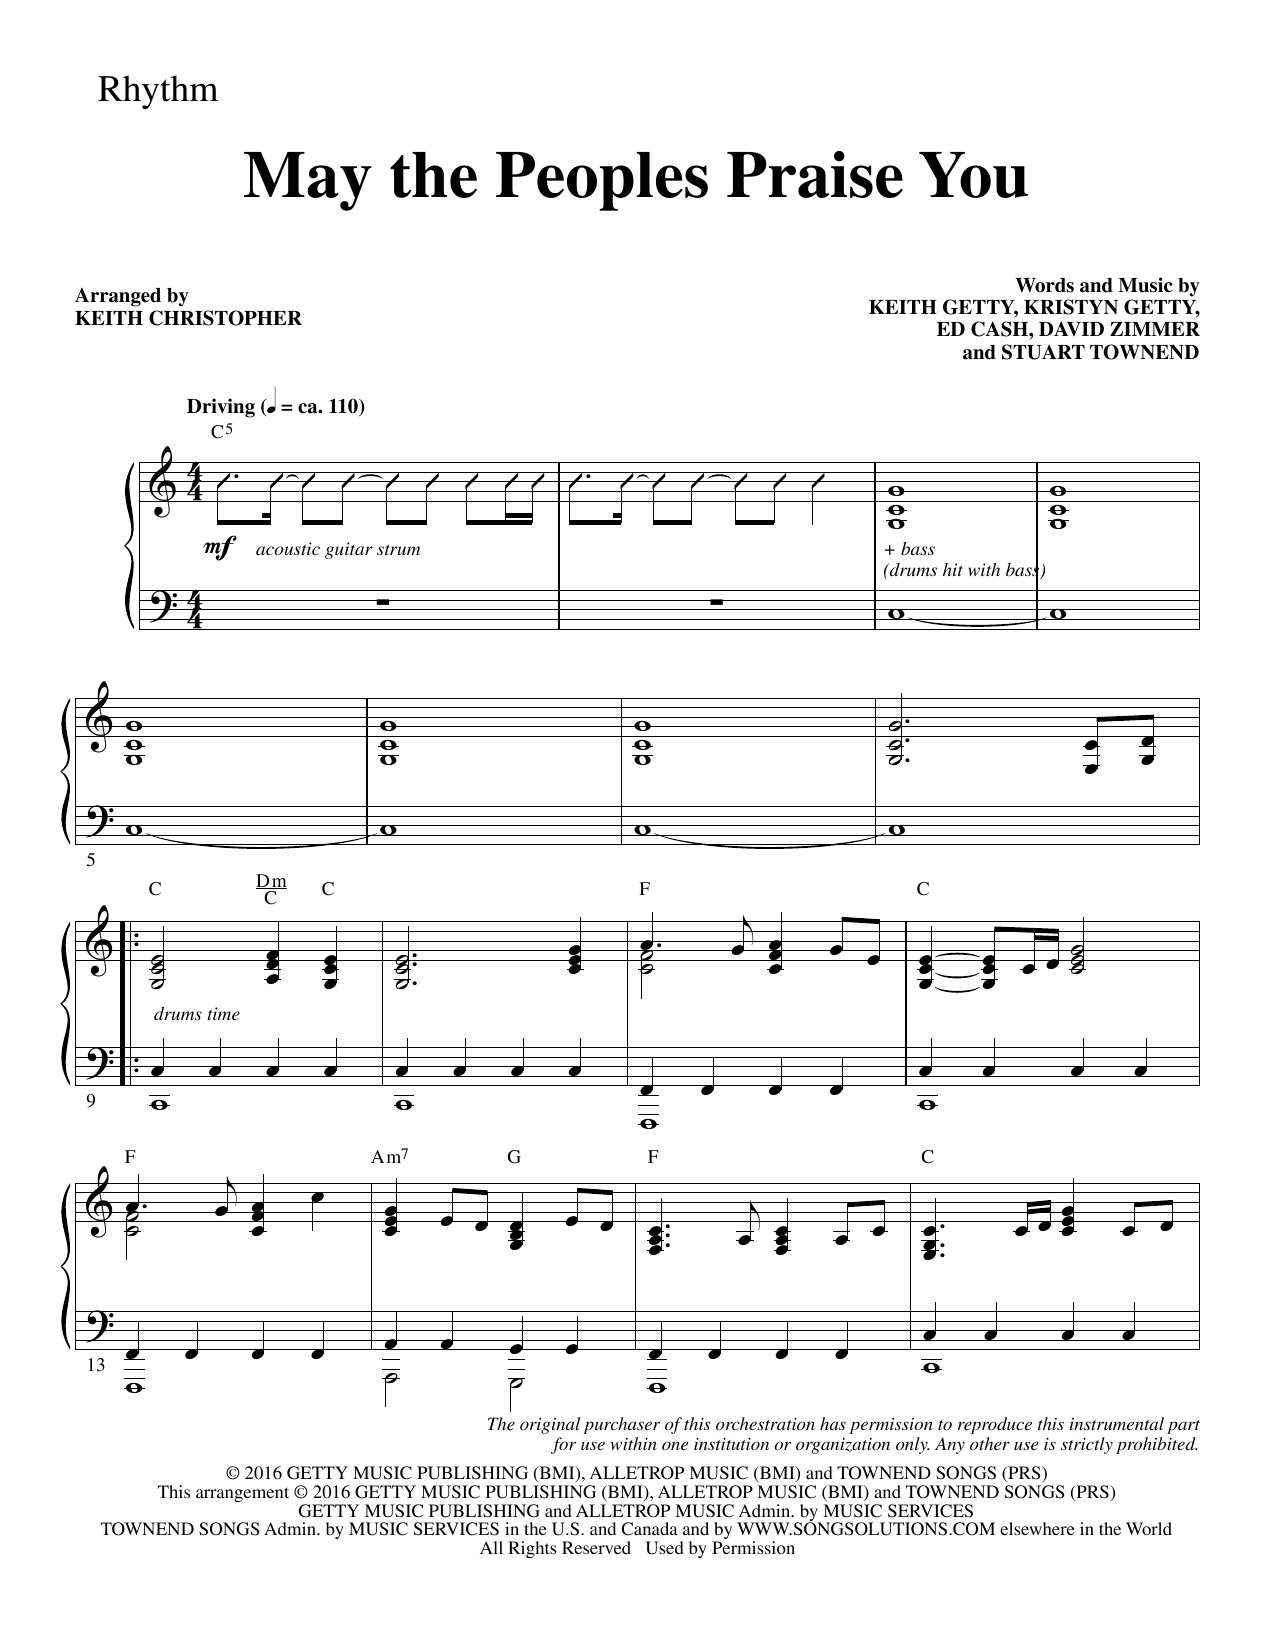 May the Peoples Praise You - Rhythm Sheet Music